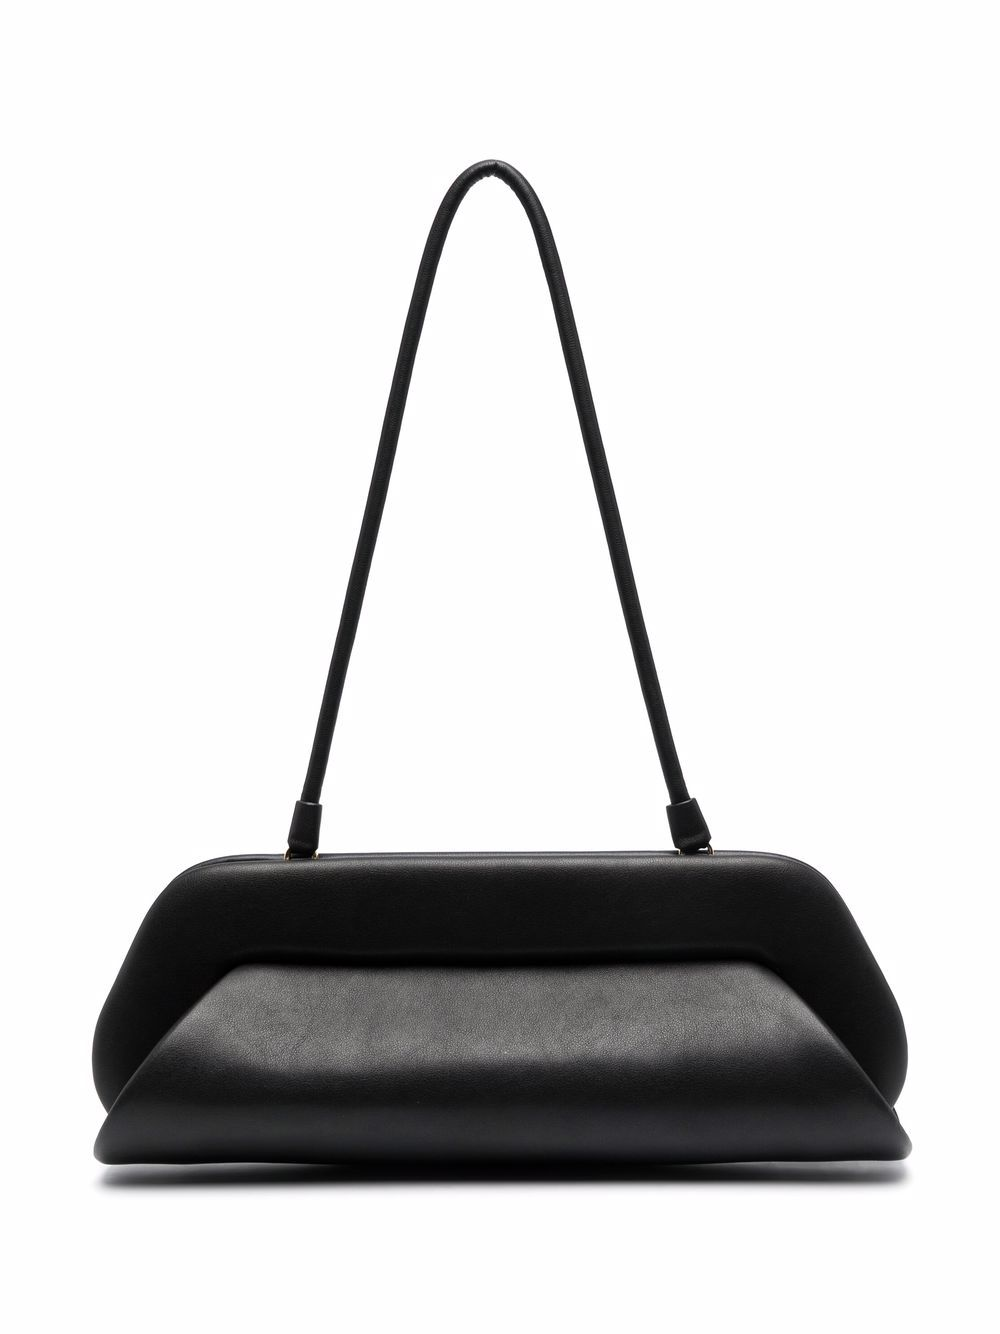 Picture of Themoire` | Dioni Shoulder Bag